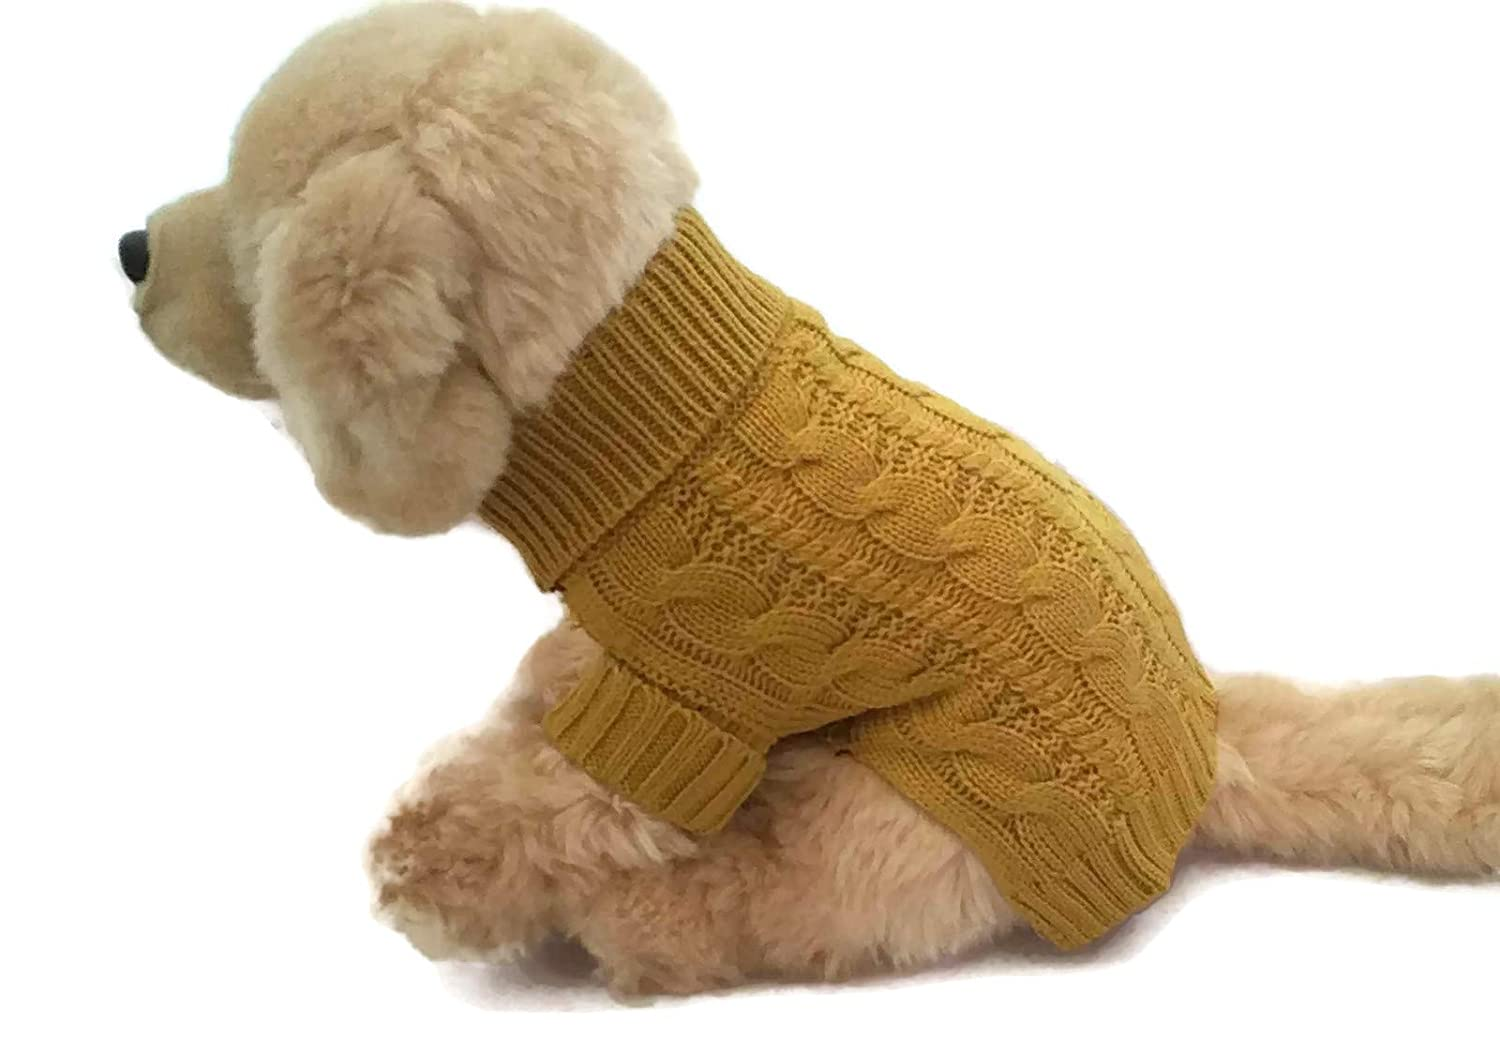 156ced55bacb Amazon.com : Le Petit Chien Small Dog Puppy Cable Knit Sweater (Large,  Mustard) : Pet Supplies